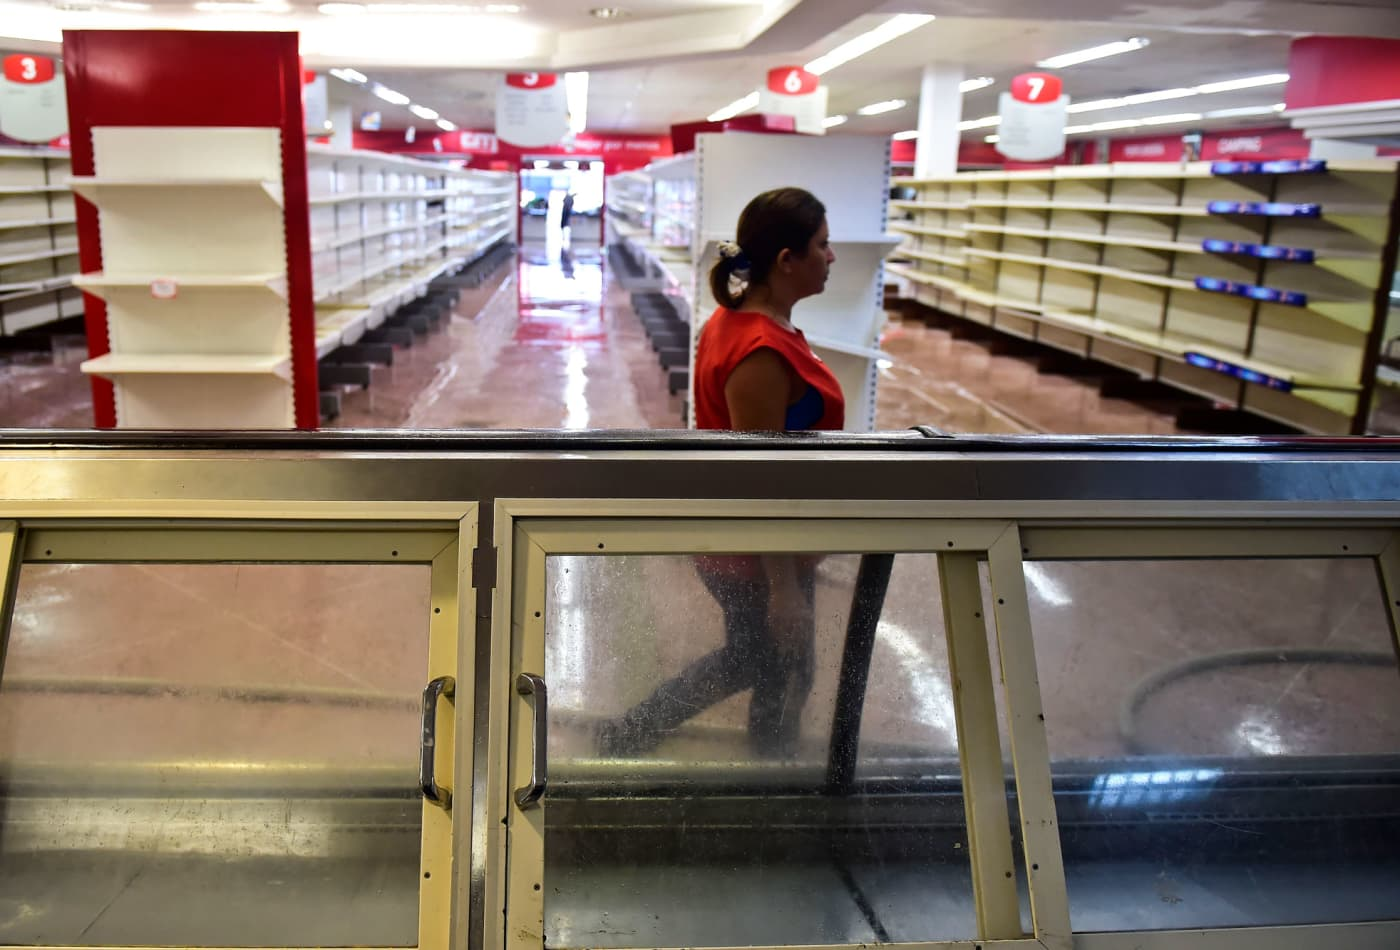 Venezuela hyperinflation hits 10 million percent. 'Shock therapy' may be only chance to undo the economic damage